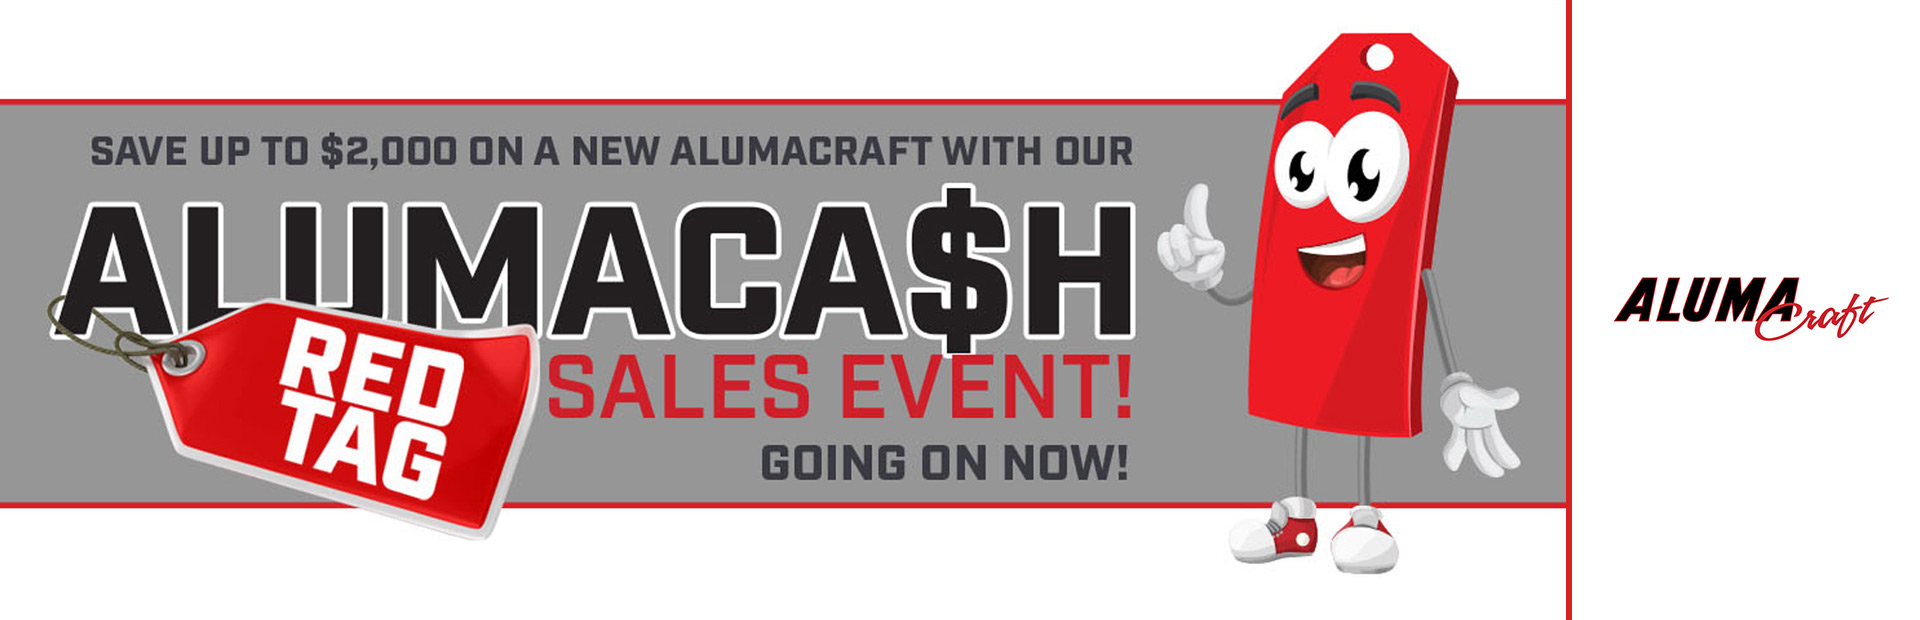 Alumacraft: AlumaCa$h Red Tag Sales Event